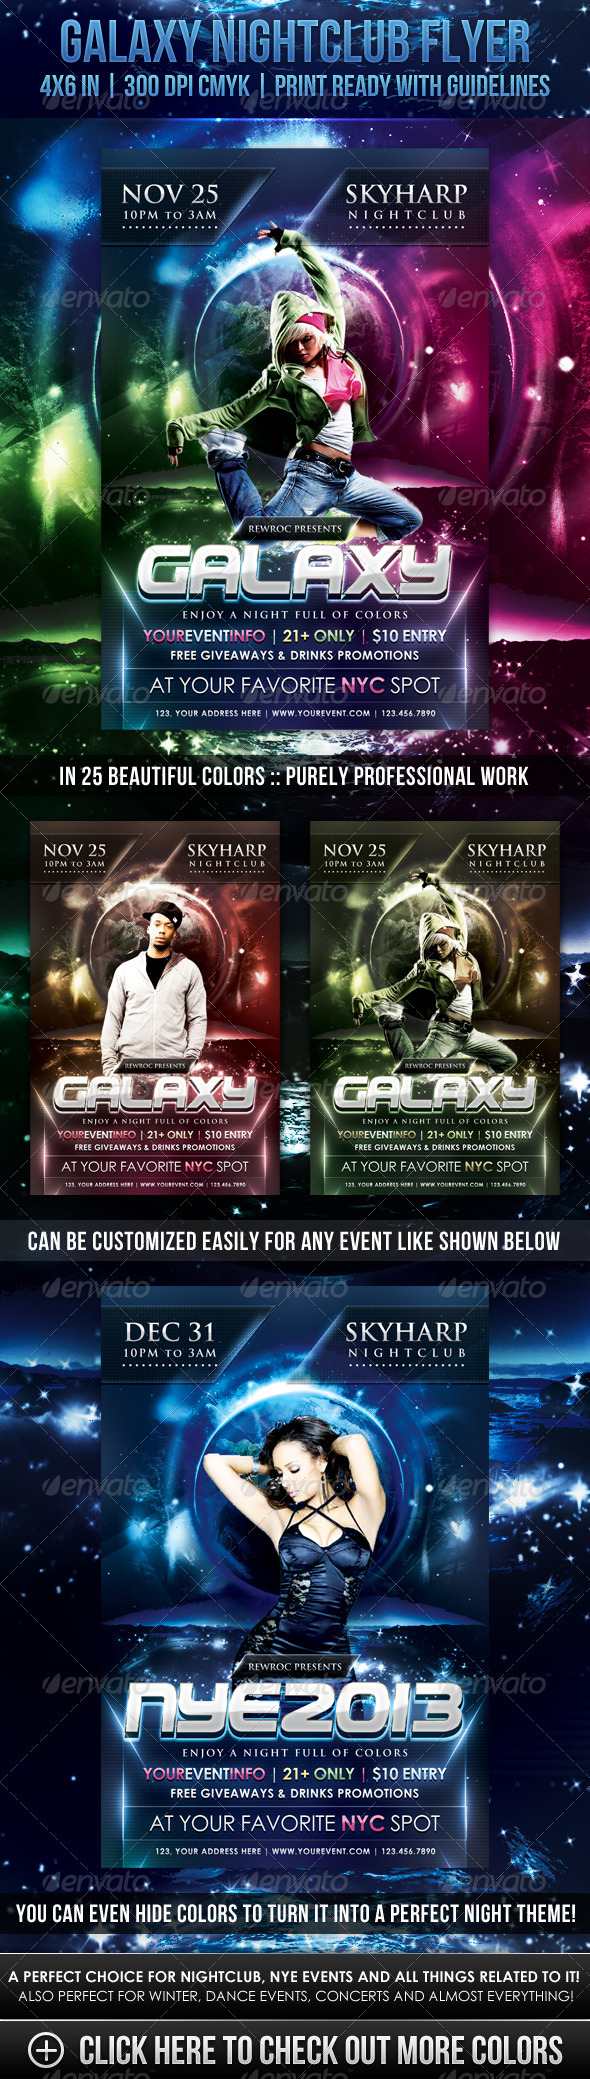 GraphicRiver Galaxy Nightclub Flyer 3509616